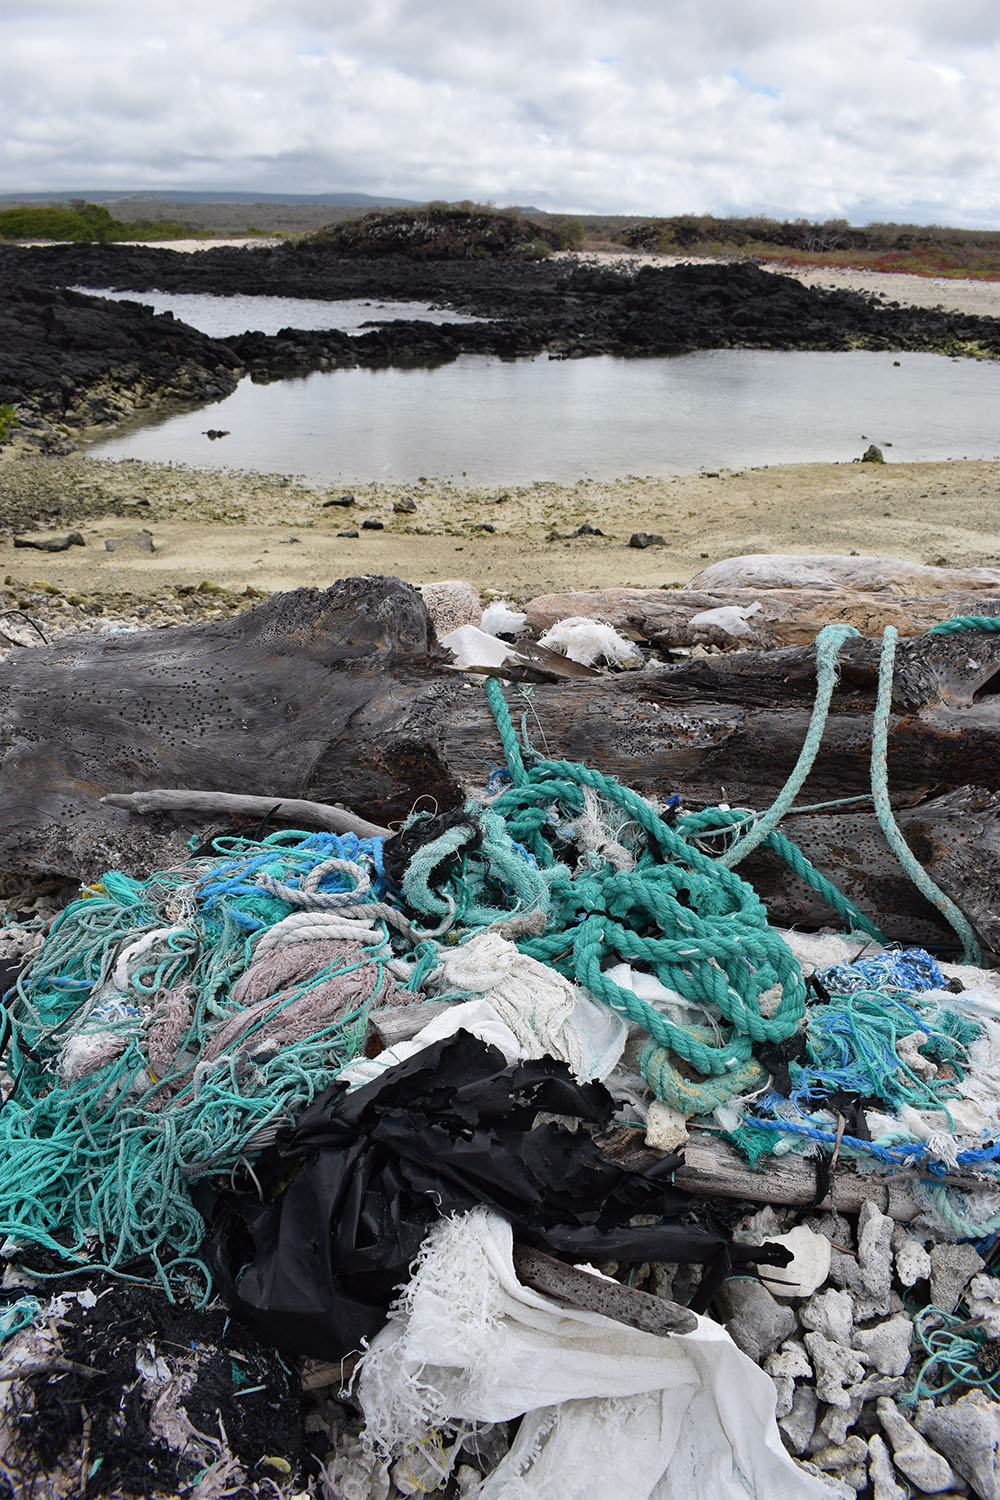 Going Back To A Plastic Pollution Free Galapagos Once Again